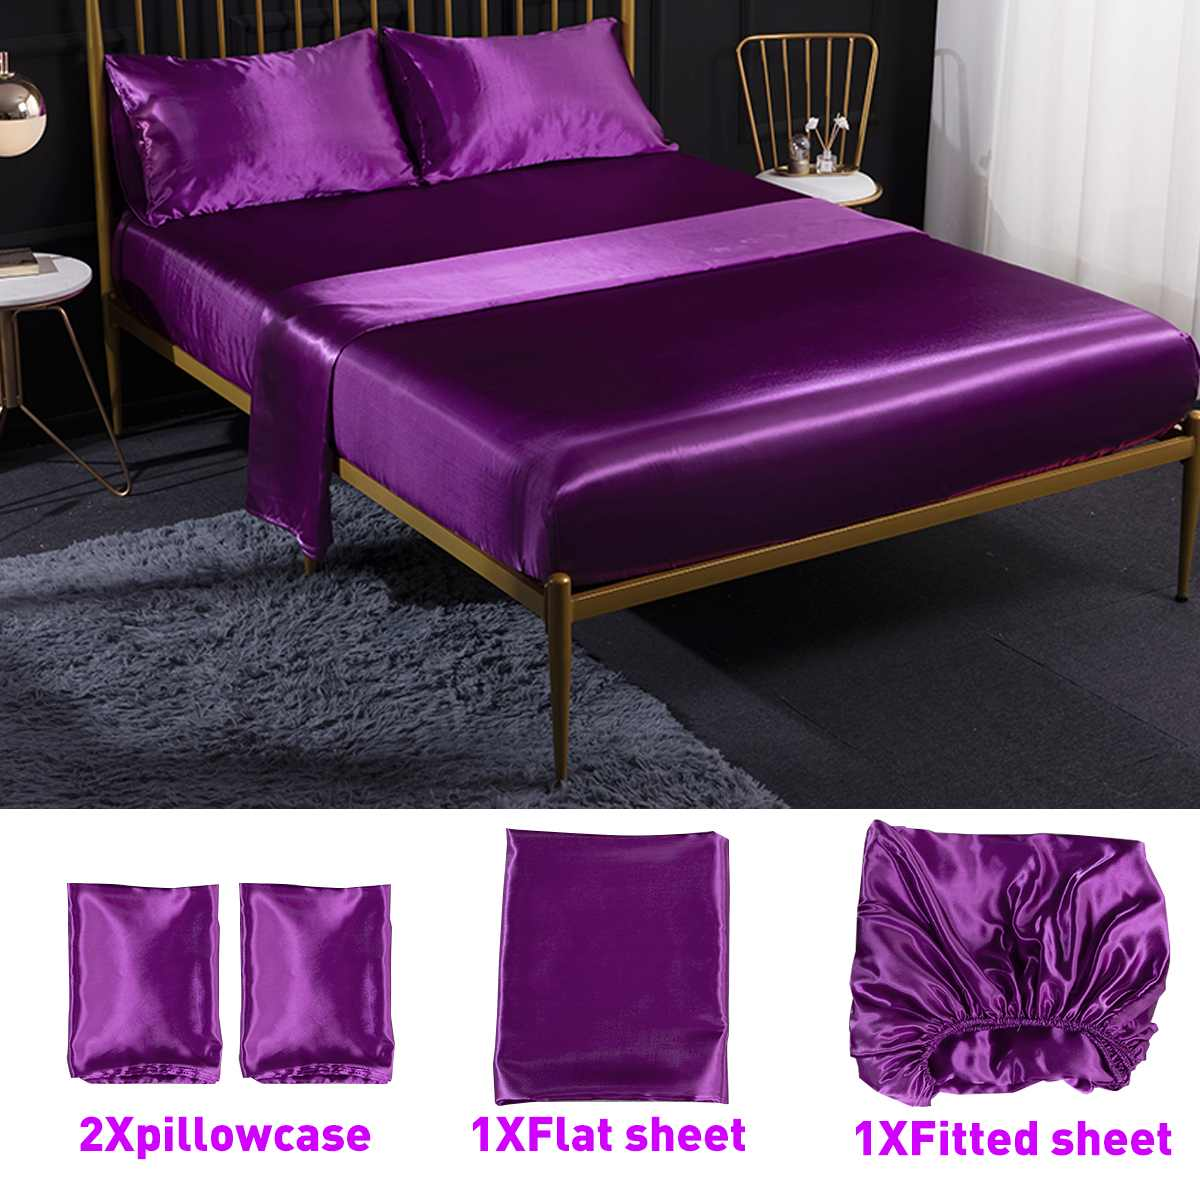 Pillowcase Bedding-Set Fitted-Sheet Satin Romantic Silk Home-Textile 4pcs Twin/Full/queen/king-size